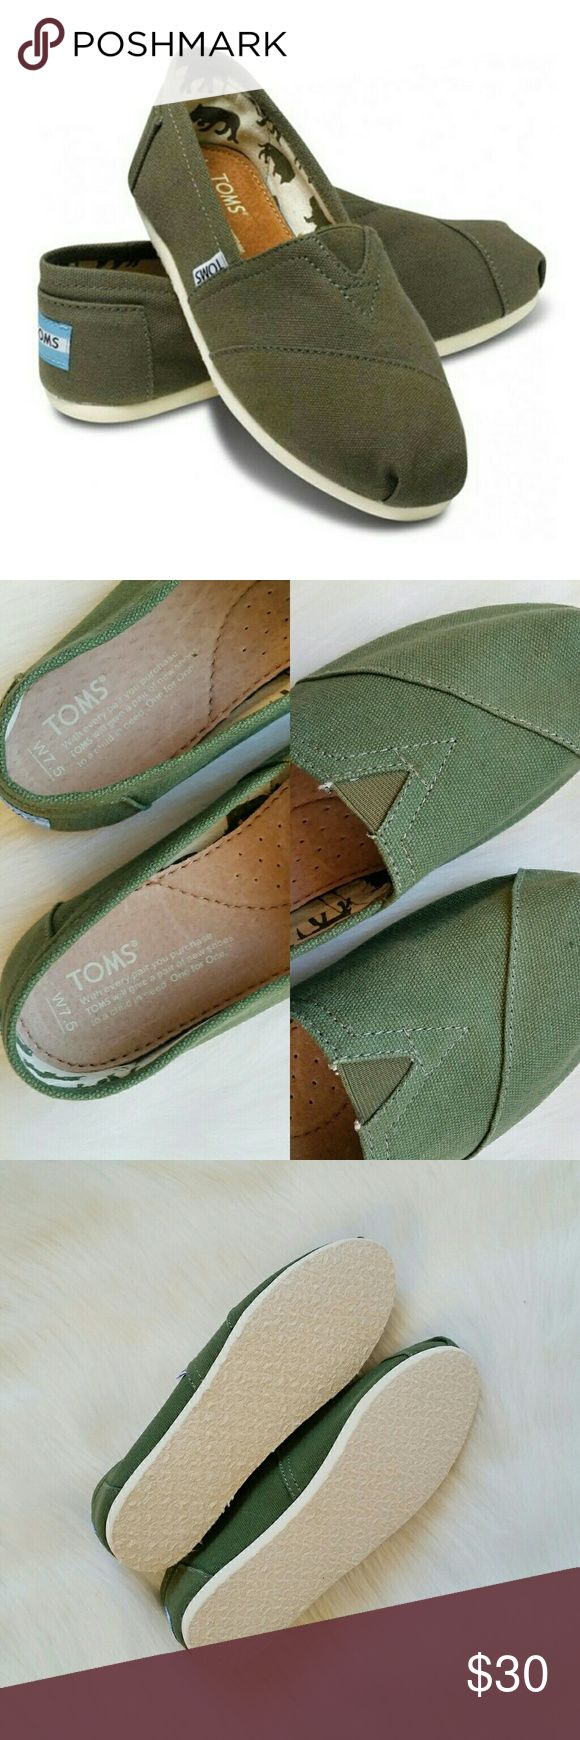 Olive Green Tom Canvas Slip On Shoes Olive Green Tom Canvas Slip On Shoes. Brand new without tags. Never worn. Size 7.5. Toms Shoes Flats & Loafers